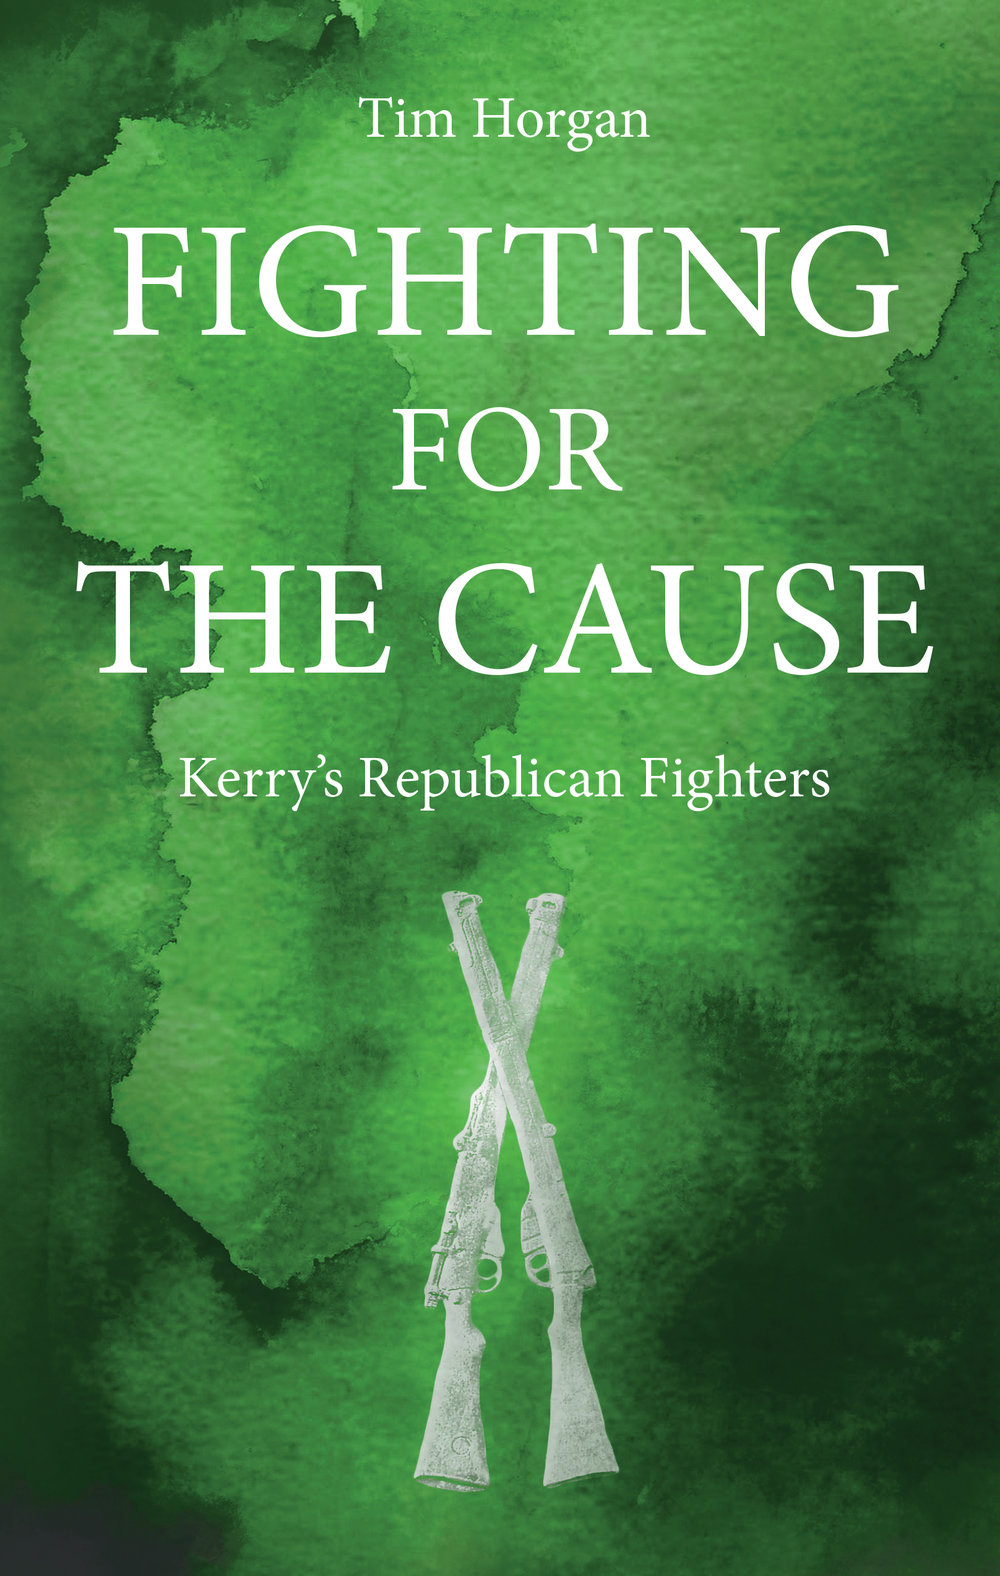 FightingForTheCause_Cover.jpg